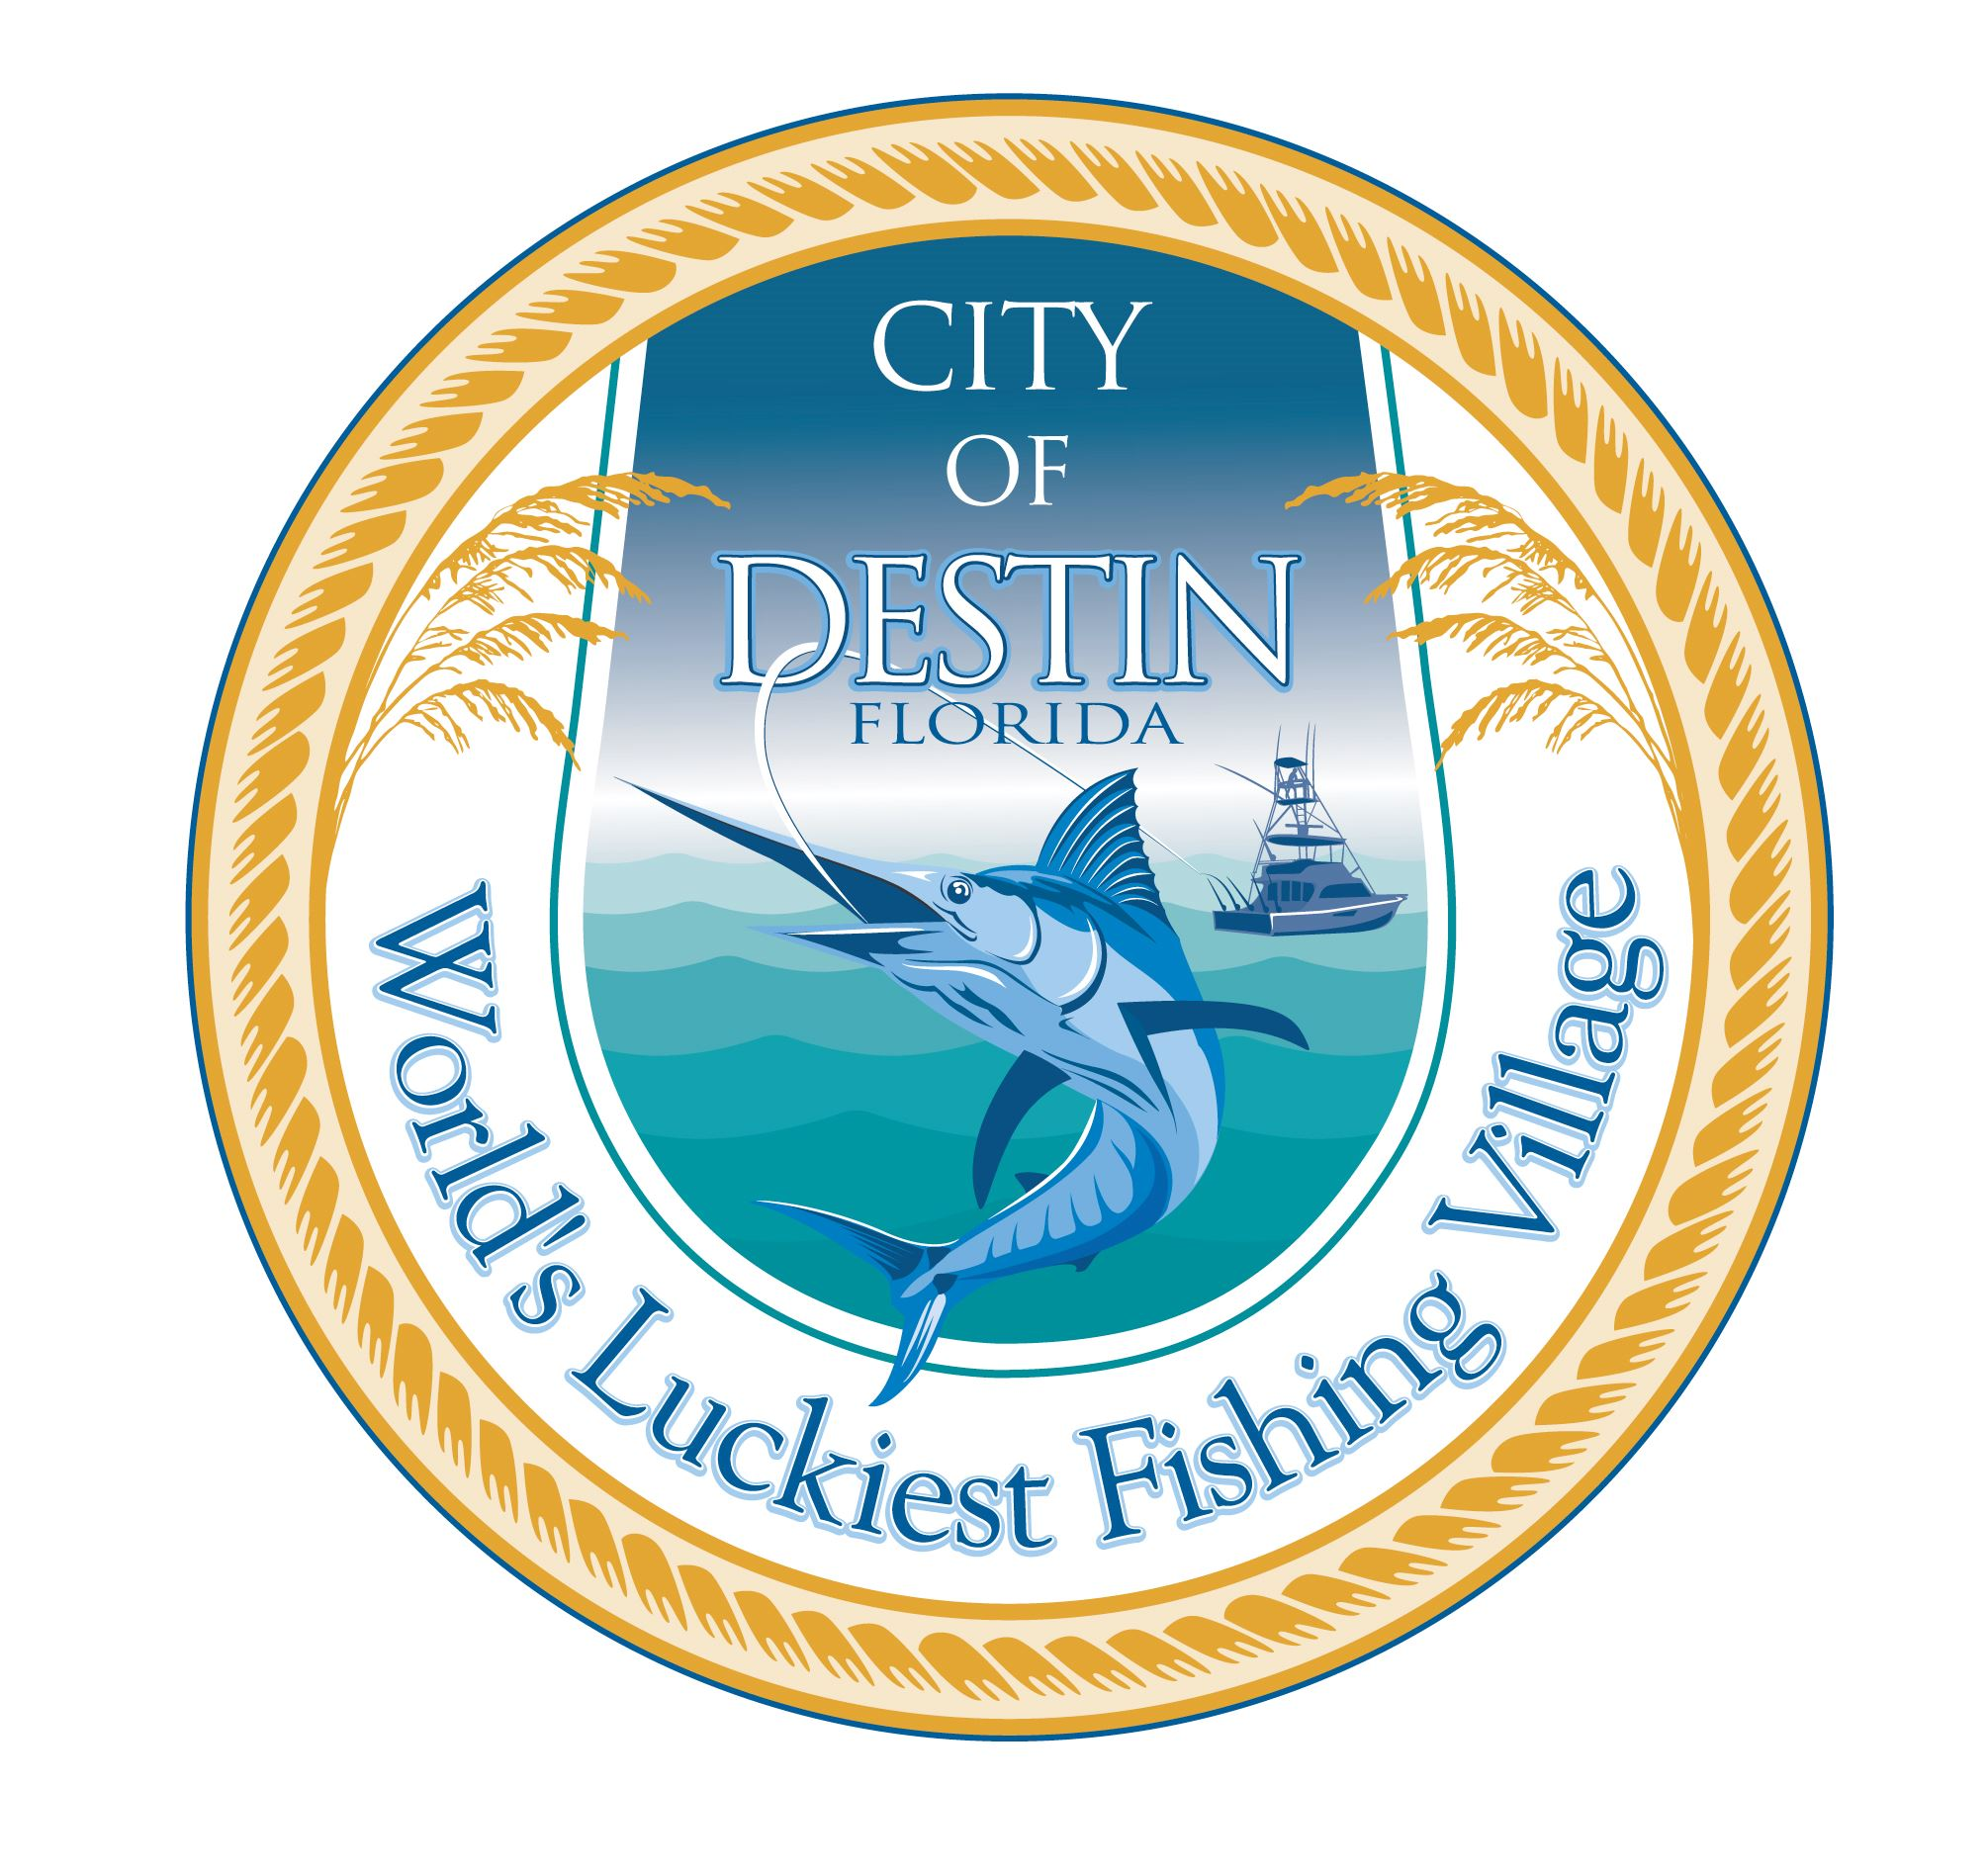 Image of the City of Destin Logo